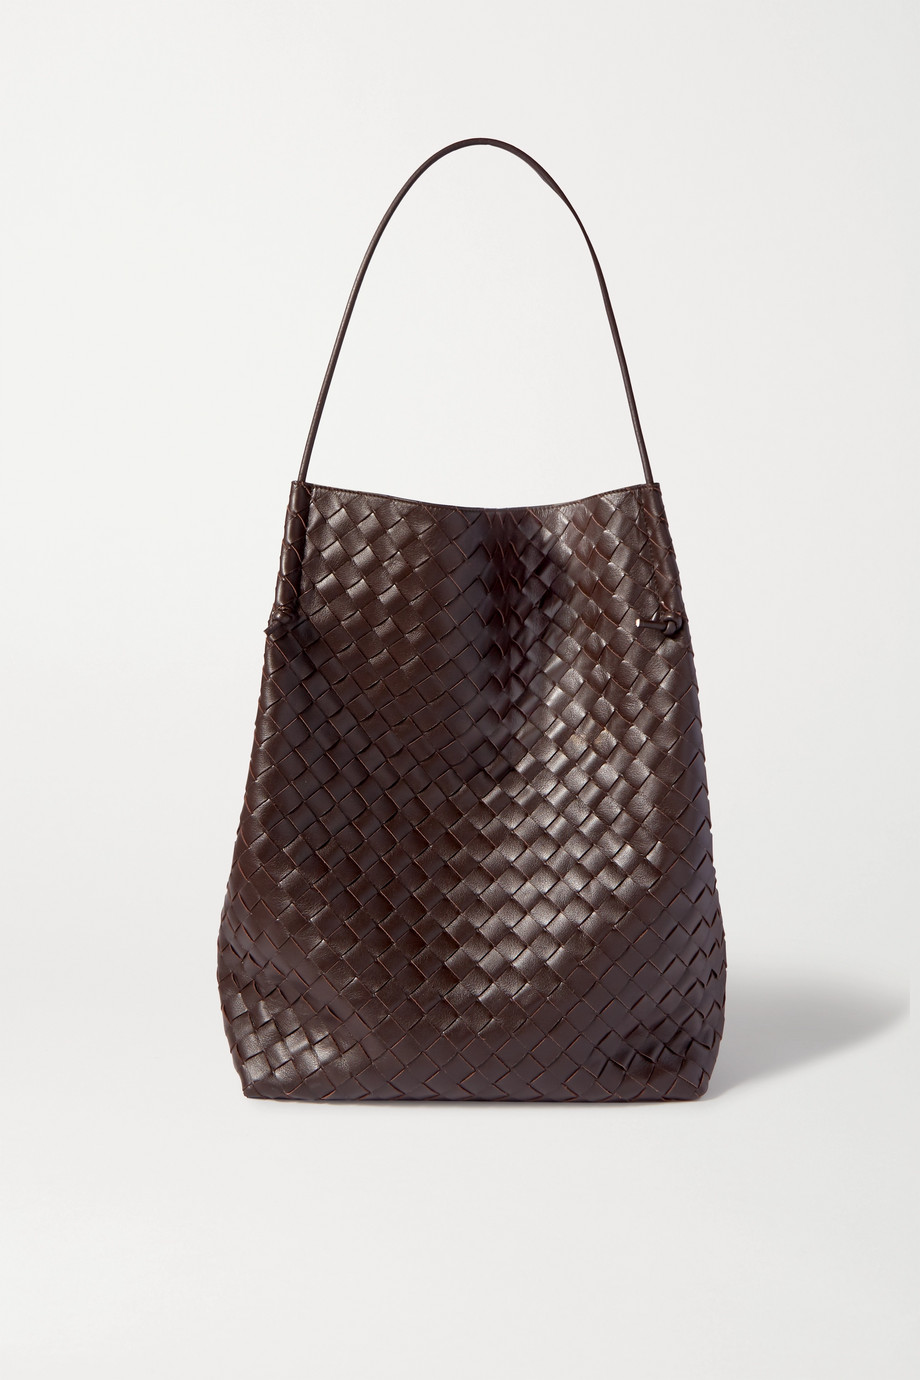 Bottega Veneta Sac à main en cuir intrecciato Knot Medium